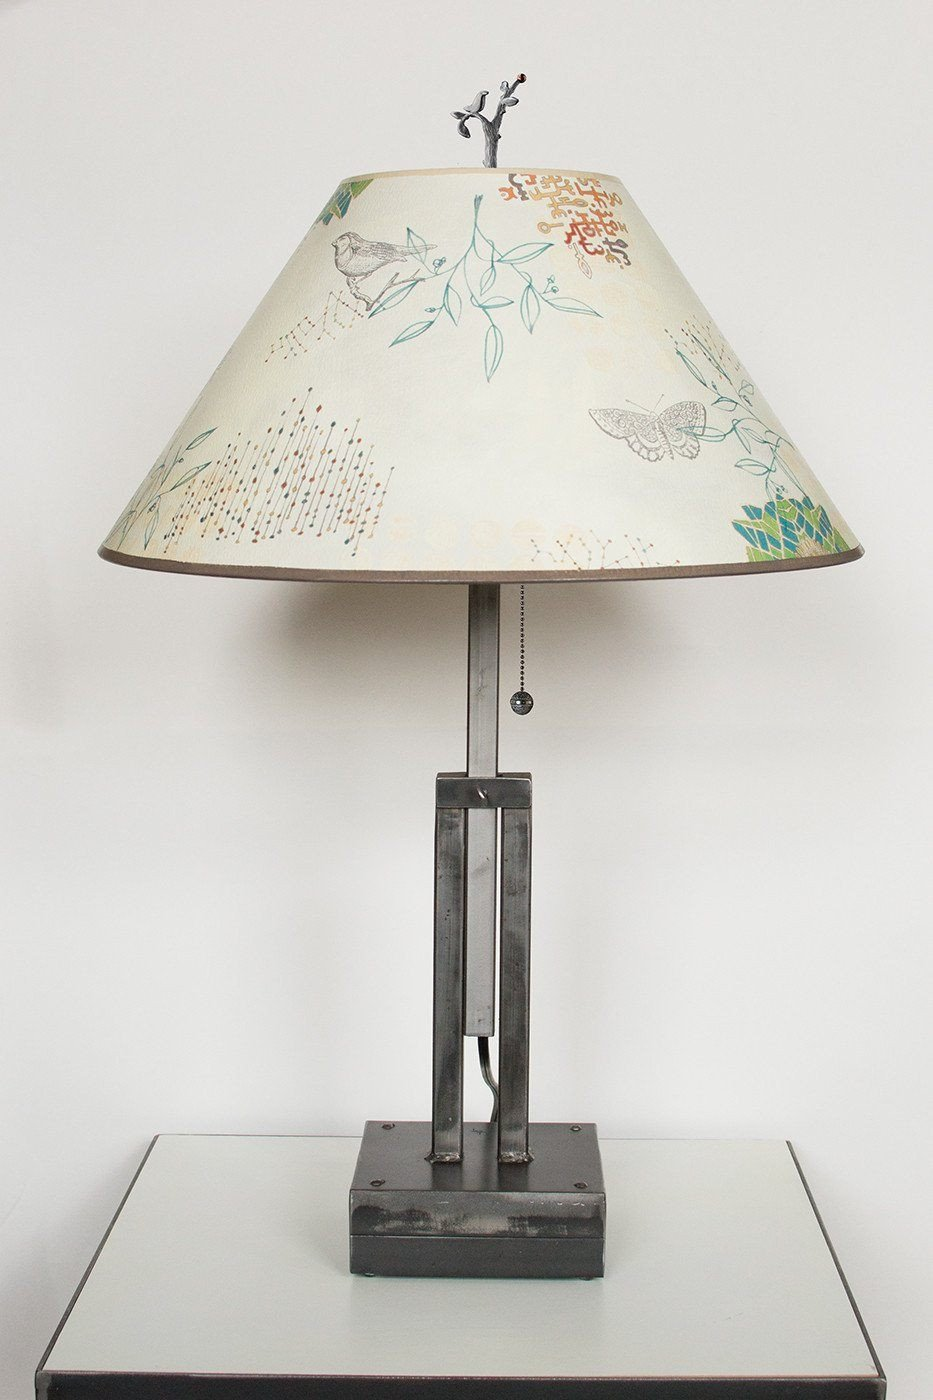 Adjustable-Height Steel Table Lamp with Large Conical Shade in Ecru Journey